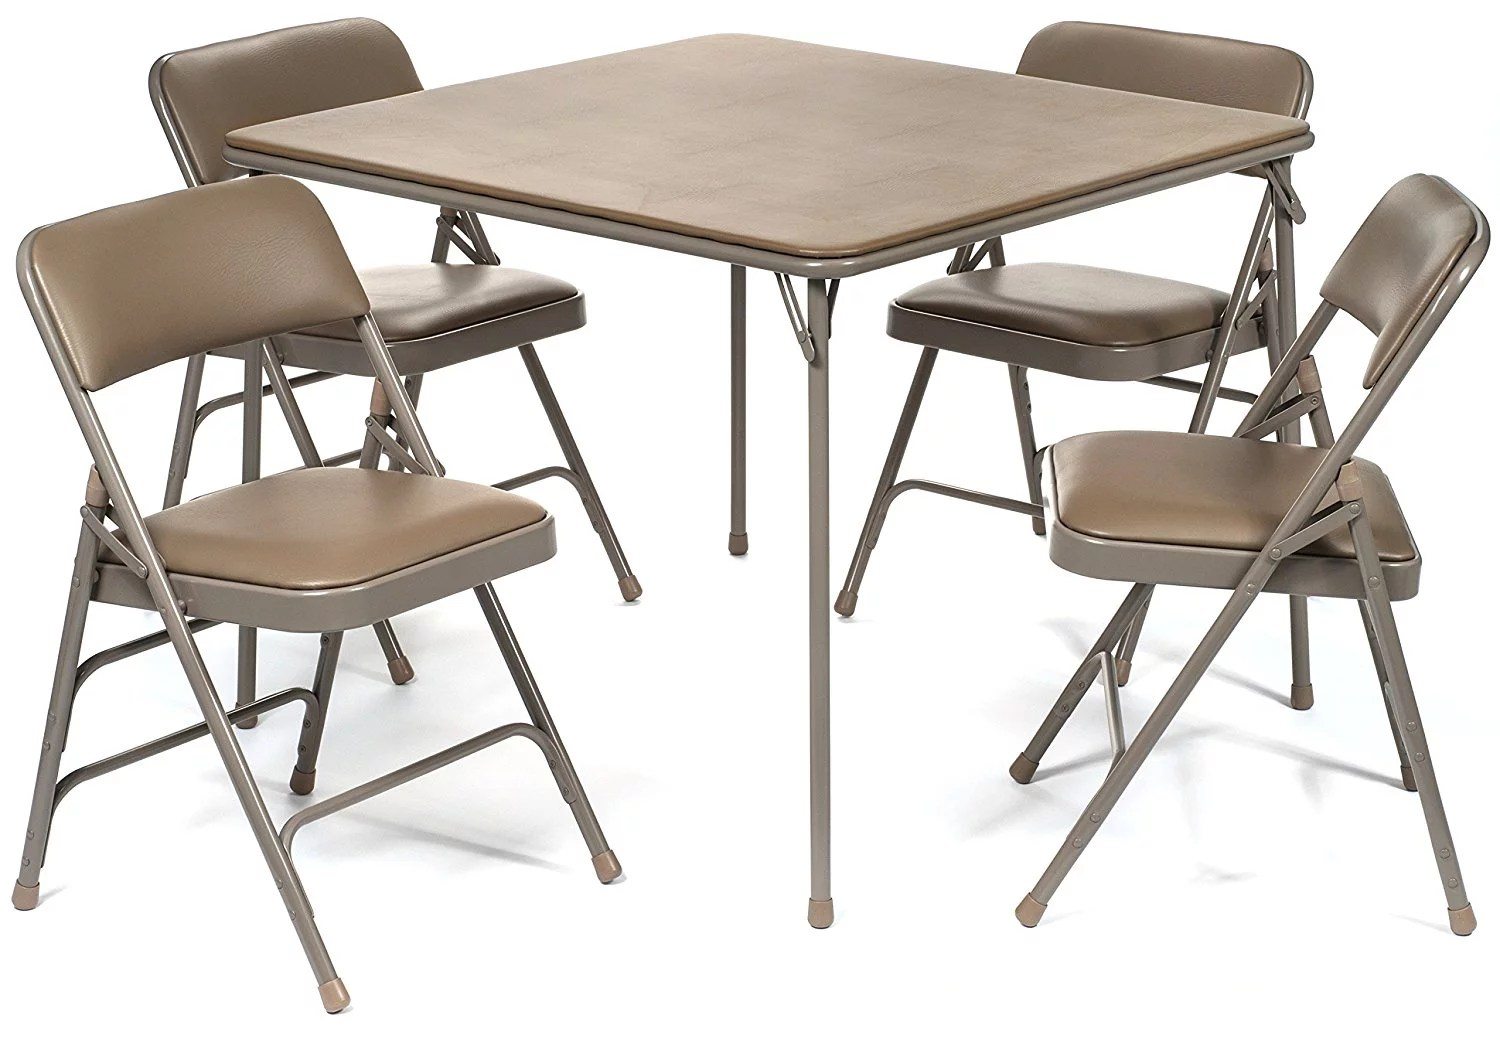 cosco card table and chairs recall mid century modern leather accent chair tables walmart com xl series folding triple braced vinyl padded set commercial